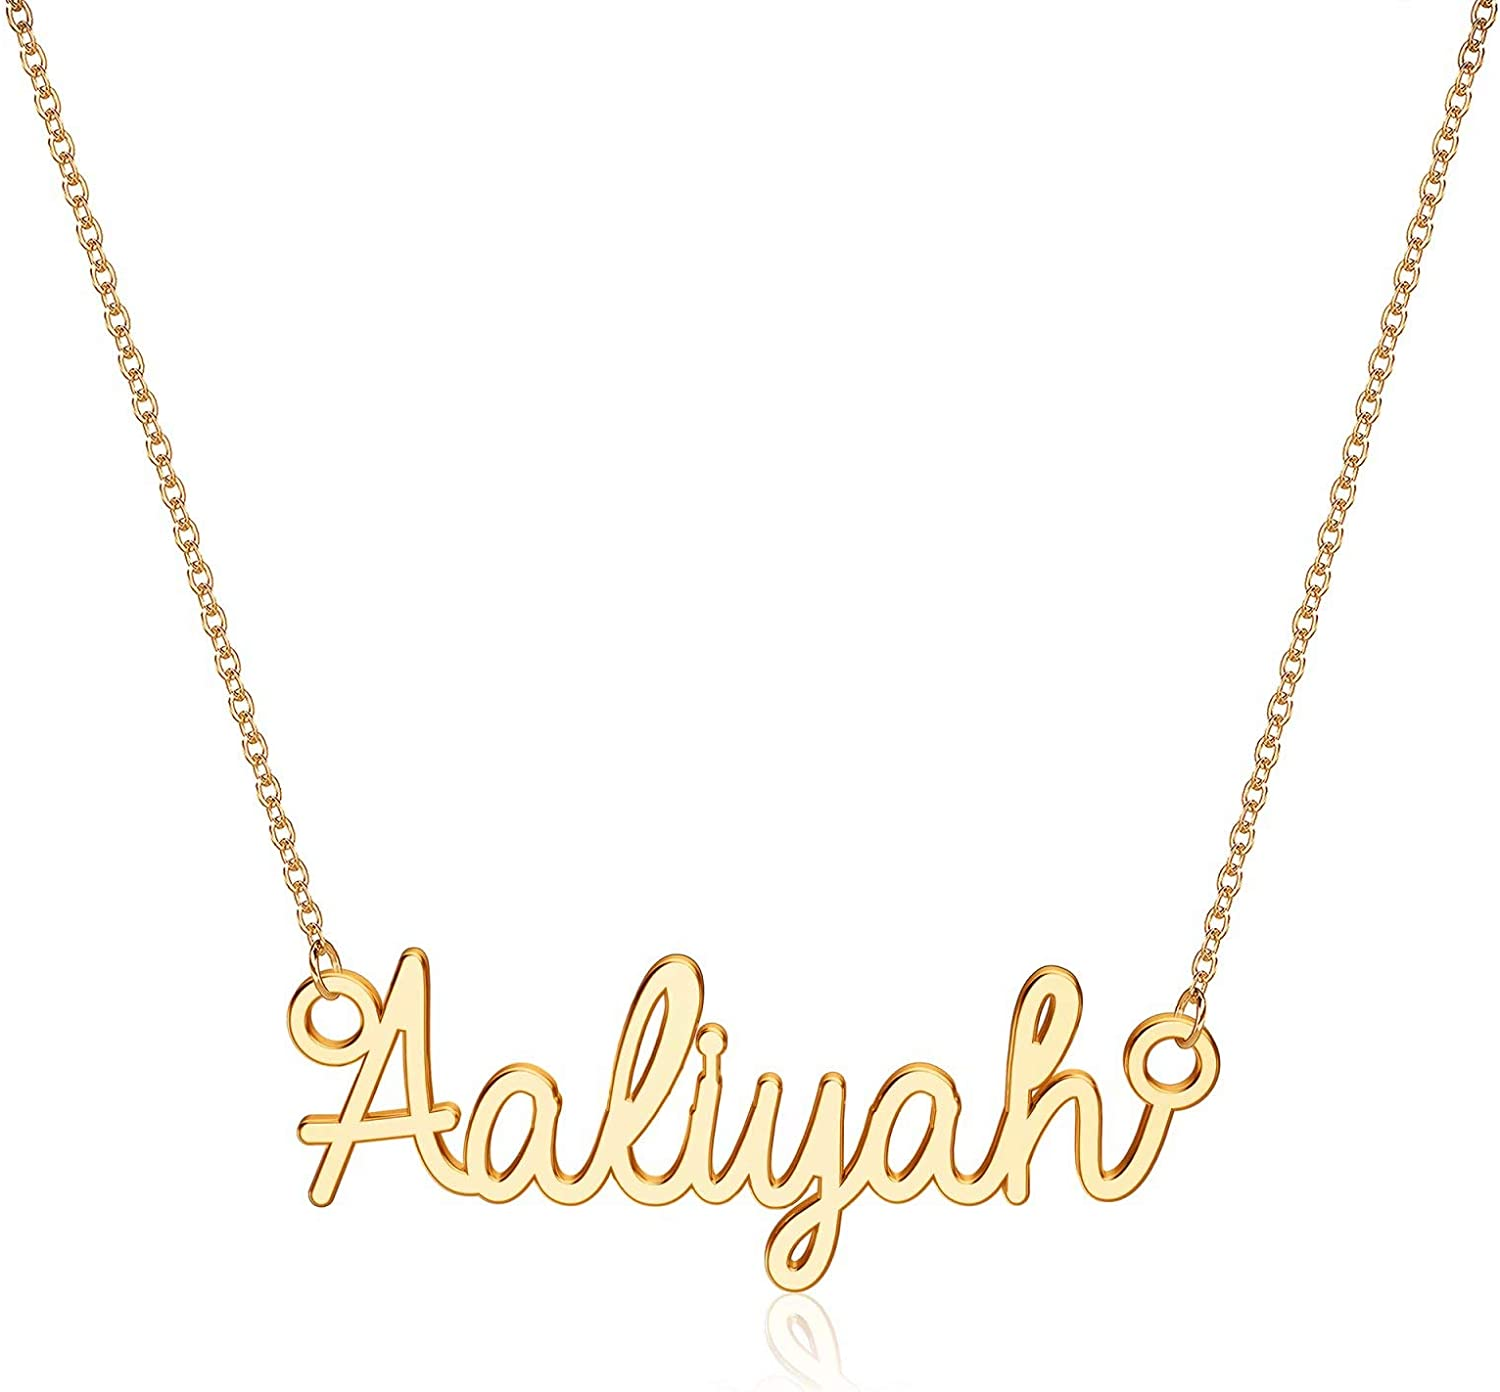 925 Sterling Silver VERONICA Name Necklace Womens Girls Pendant Gift Ready Stock